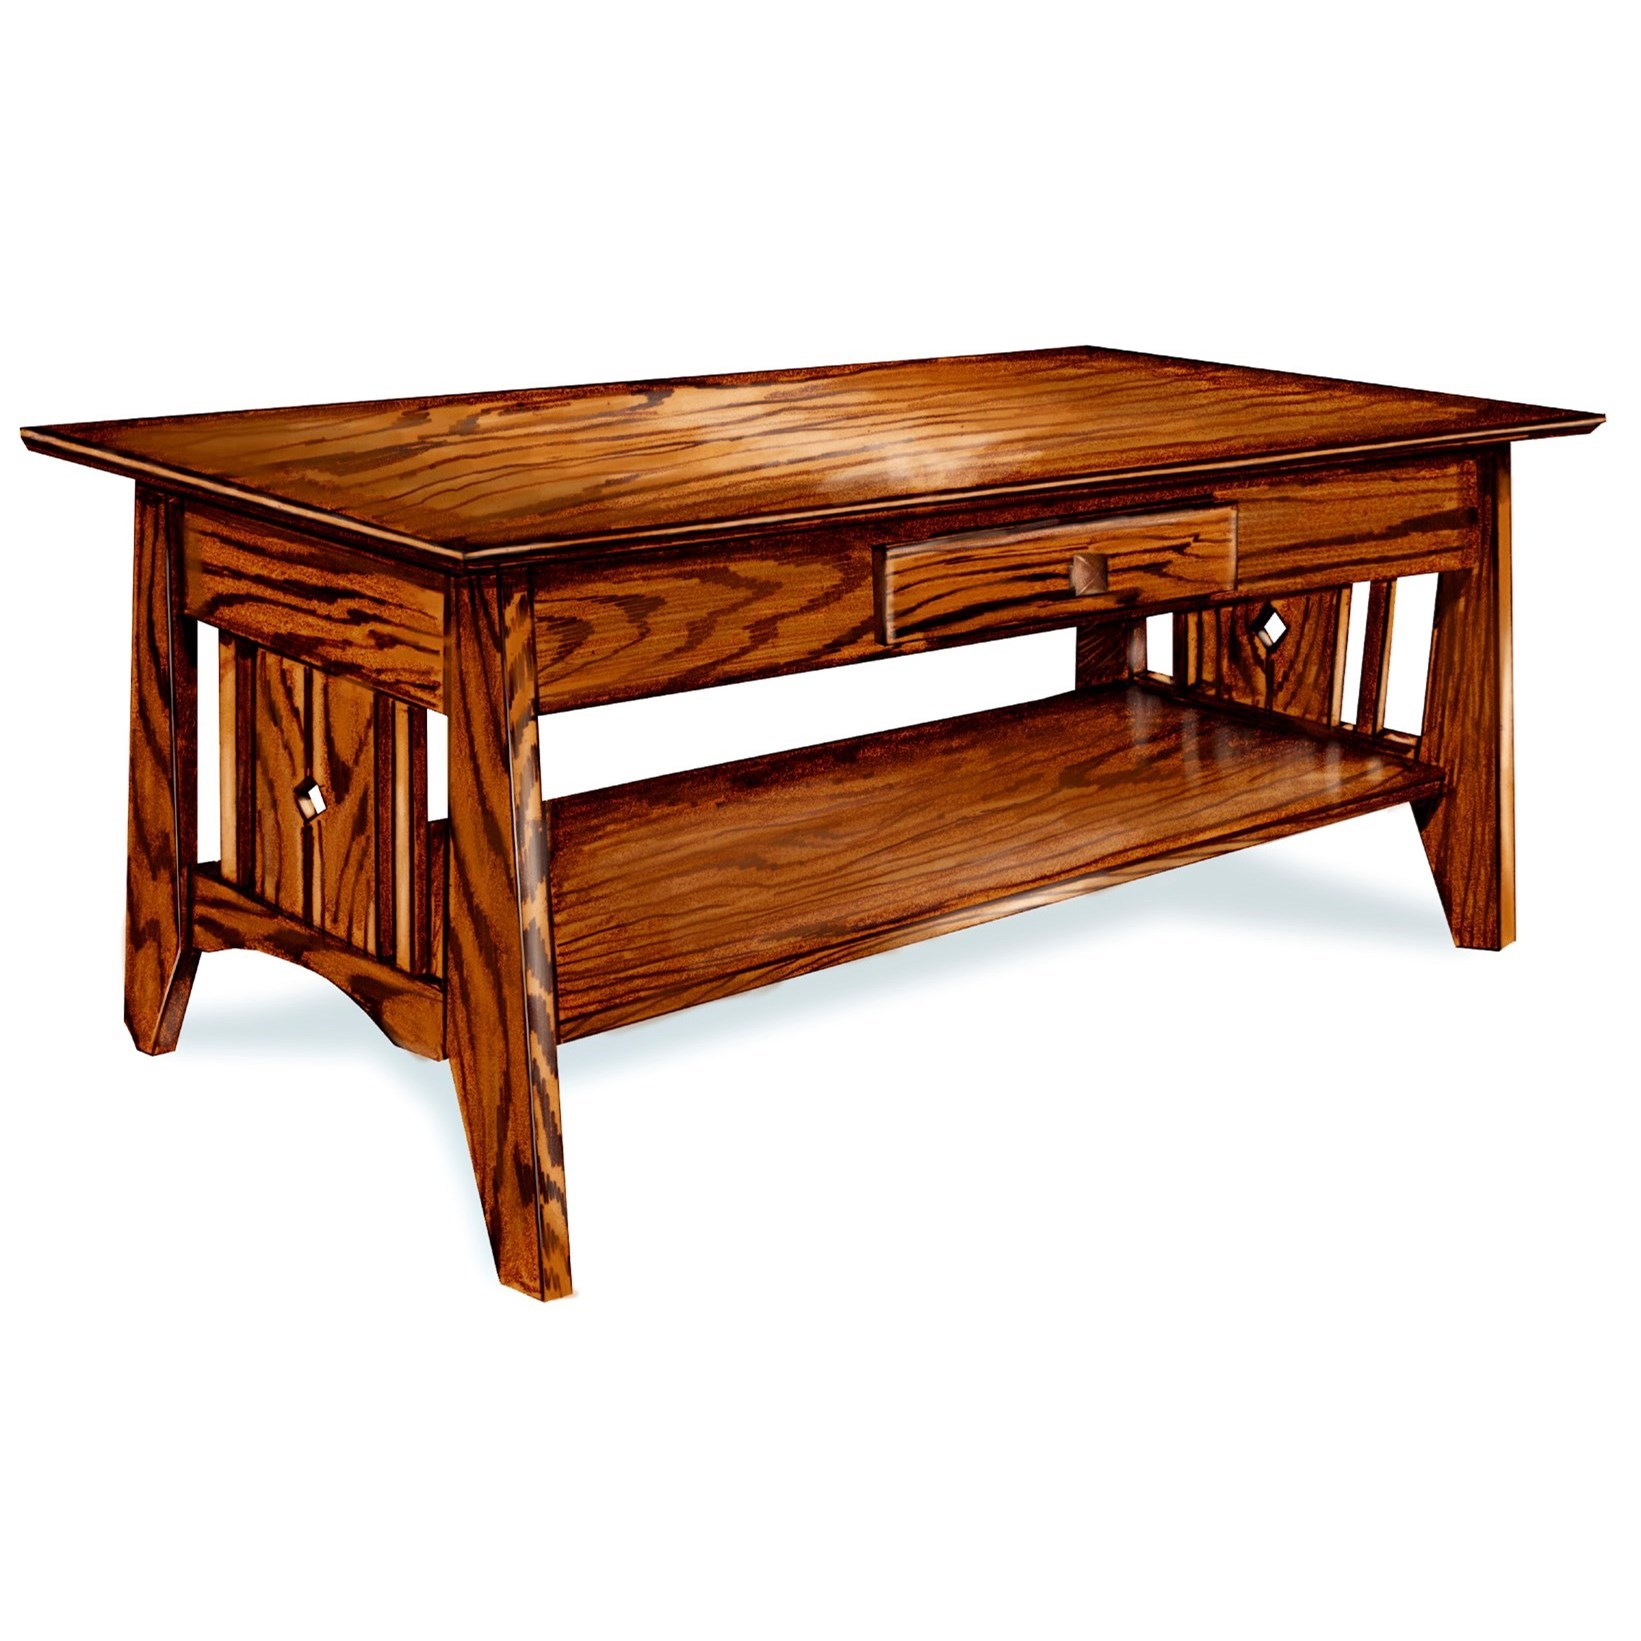 Tempe Mission Customizable Solid Wood Coffee Table by Ashery Woodworking at Saugerties Furniture Mart